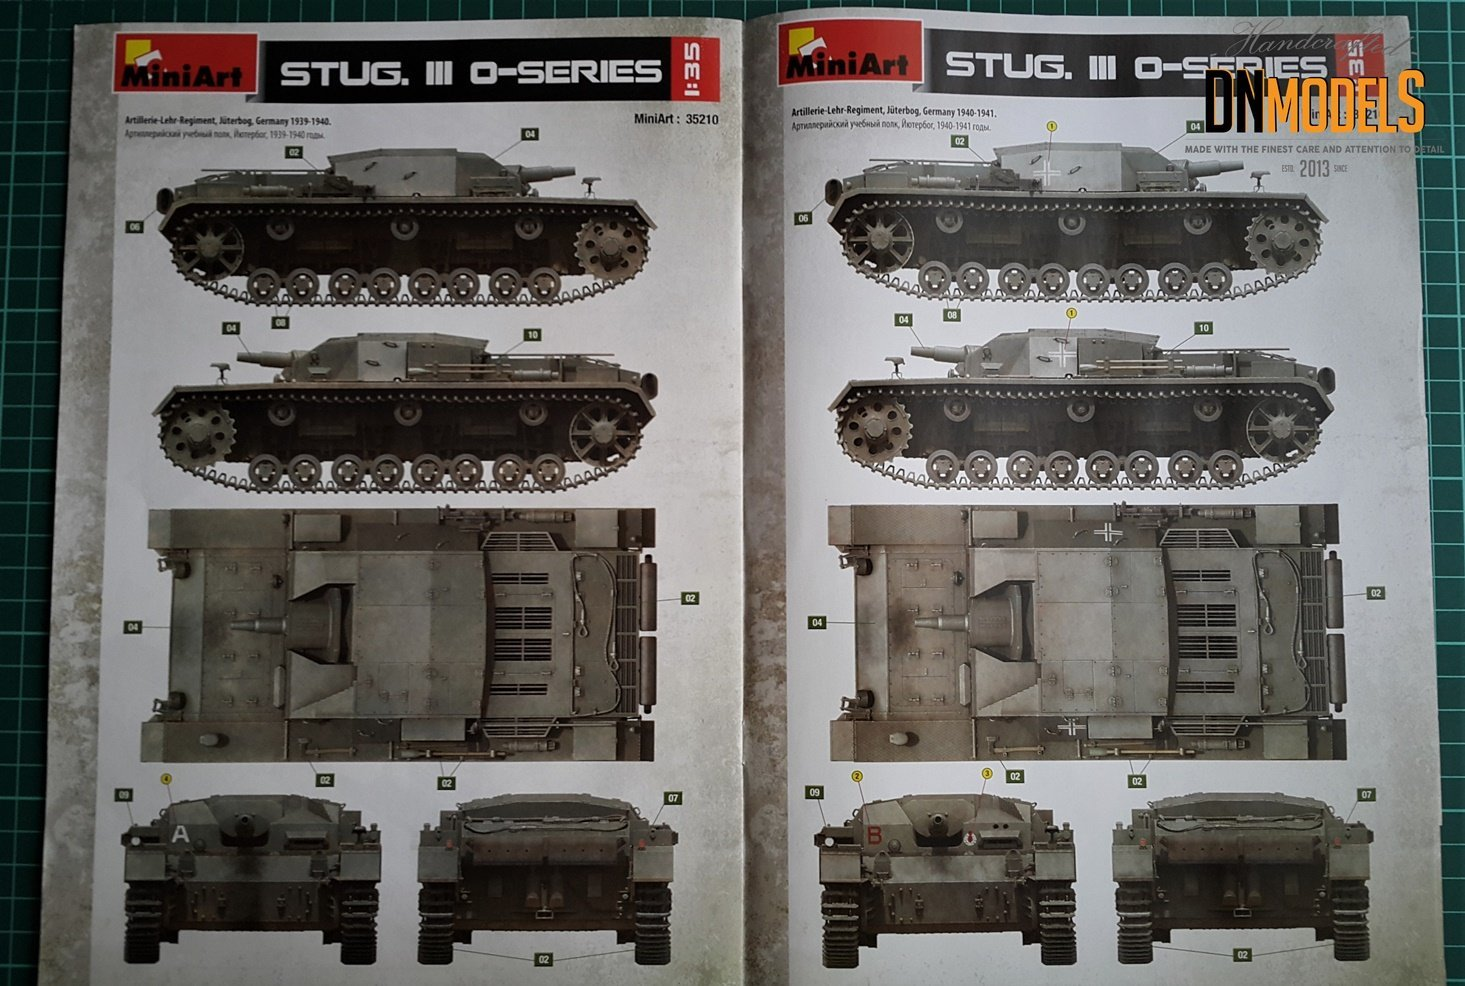 StuG III 0-series Miniart 35210 Unboxing Review DN Models Masks for Scale Models color II